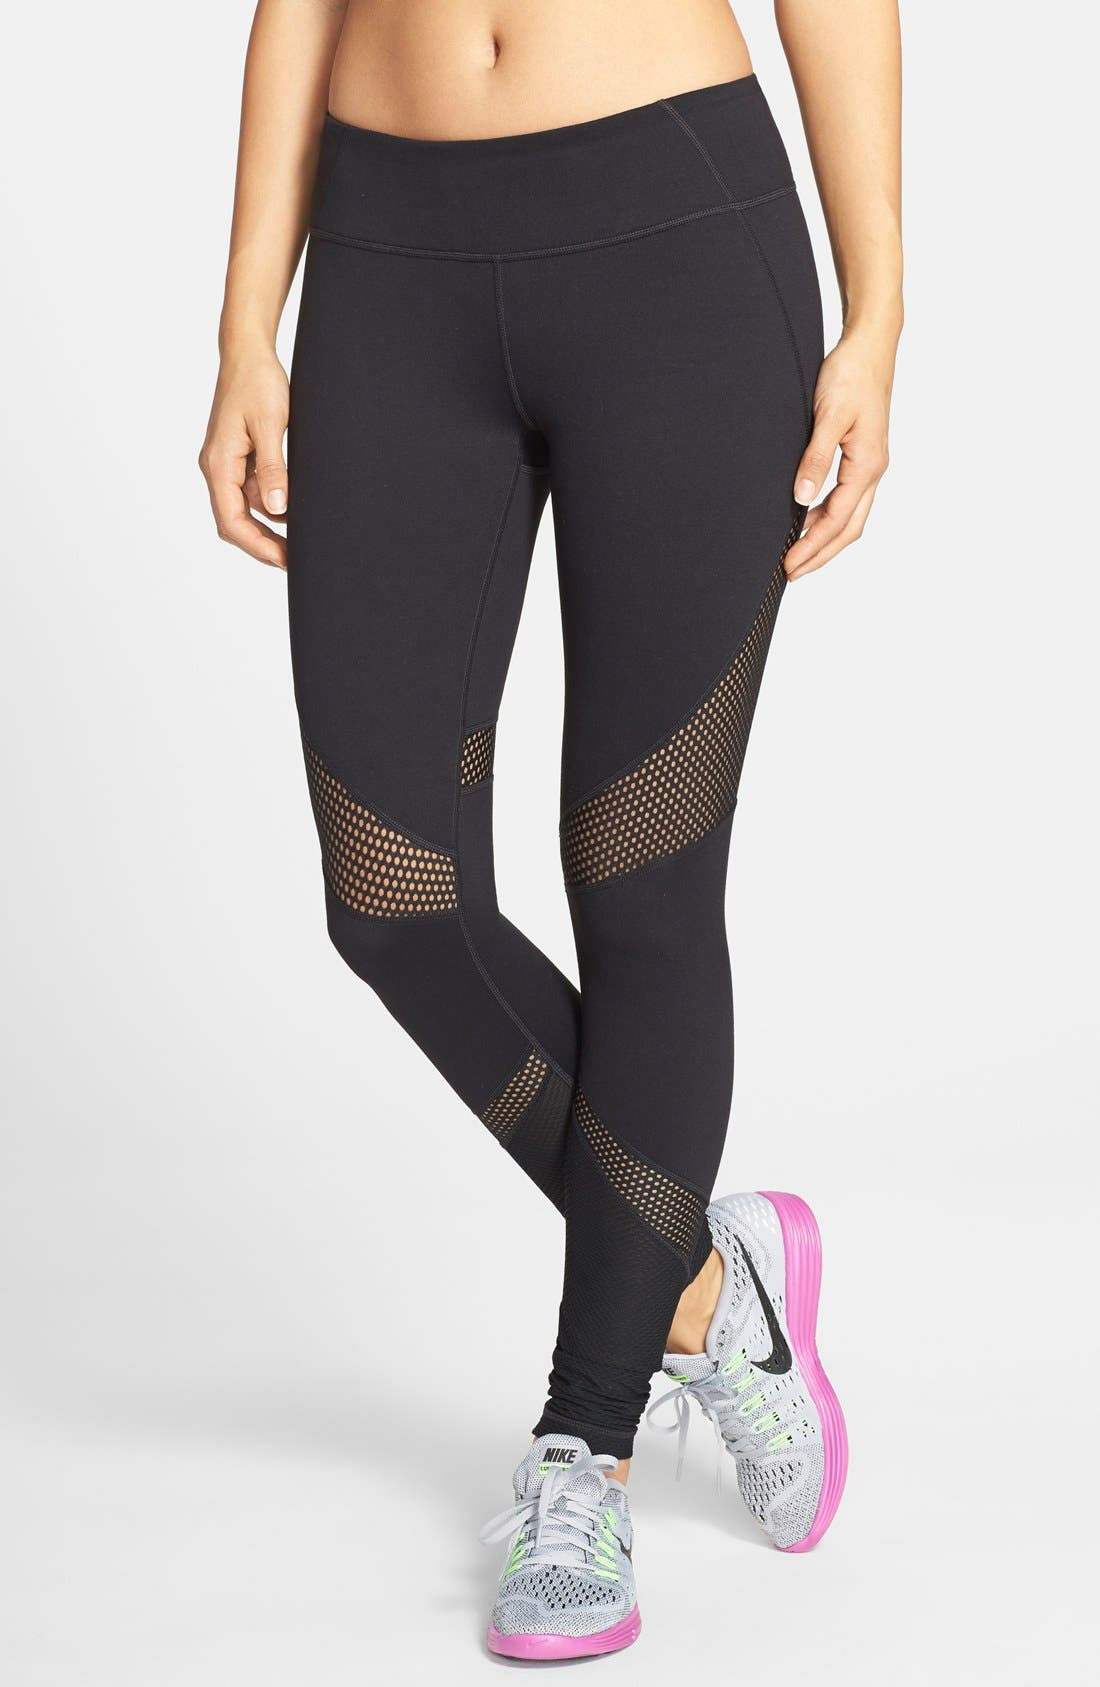 Main Image - Zella 'Live In - Out of Bounds' Slim Fit Leggings